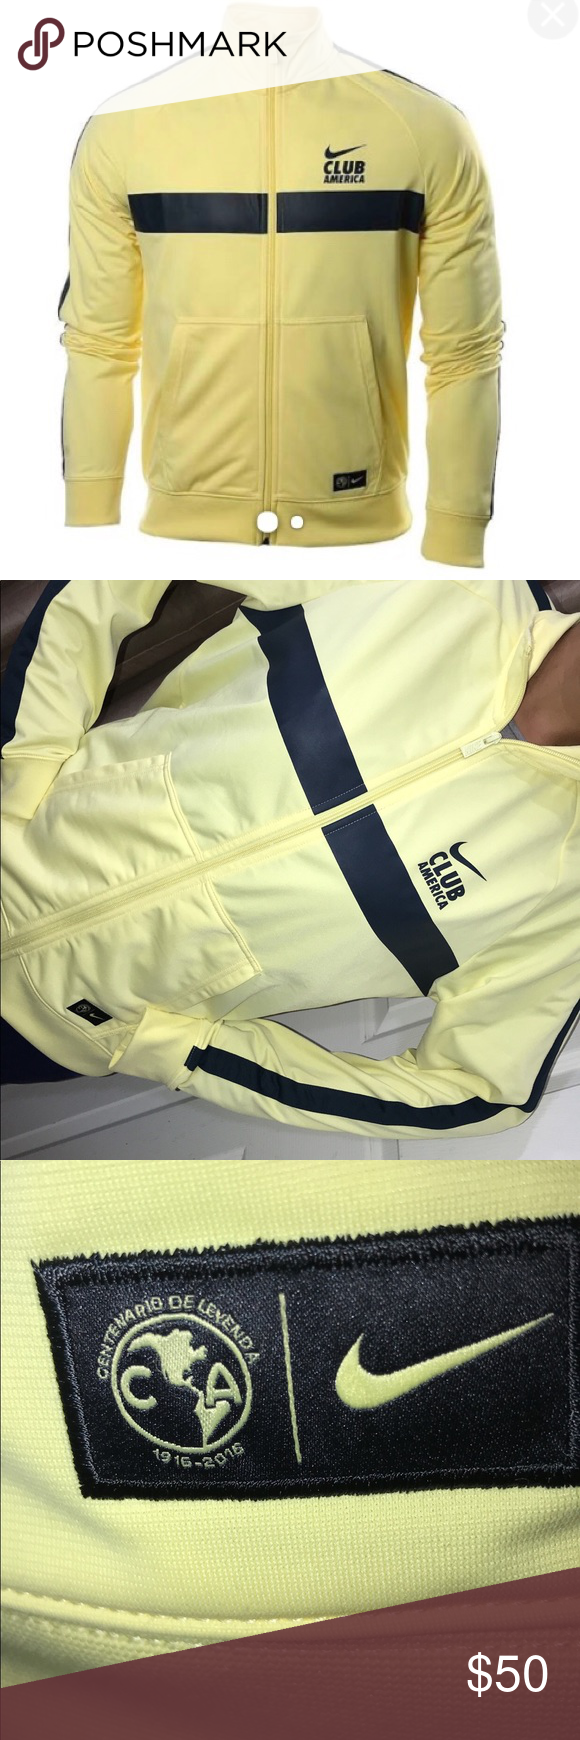 937205739d3 Club America Nike jacket Nike original club America Jacket Size L Worn once  at most Can be used for men or women Nike Jackets & Coats Lightweight &  Shirt ...